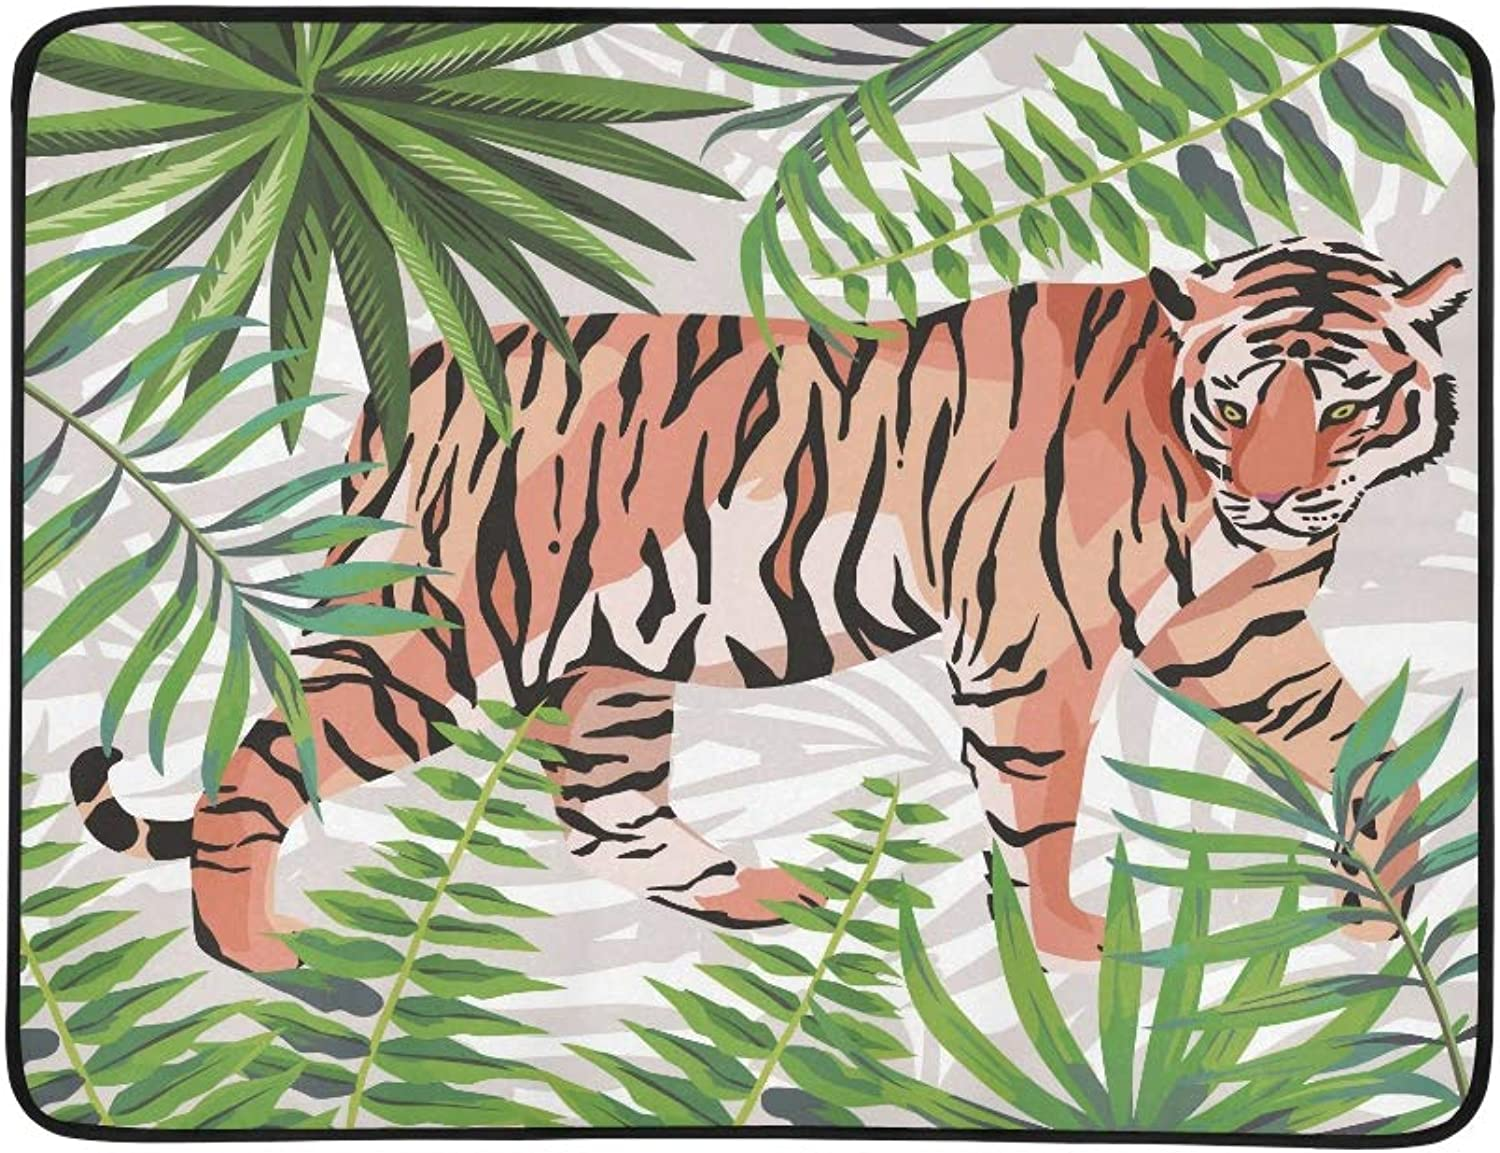 Tiger Walking in Tropical Jungle Green Leaves Pattern Portable and Foldable Blanket Mat 60x78 Inch Handy Mat for Camping Picnic Beach Indoor Outdoor Travel